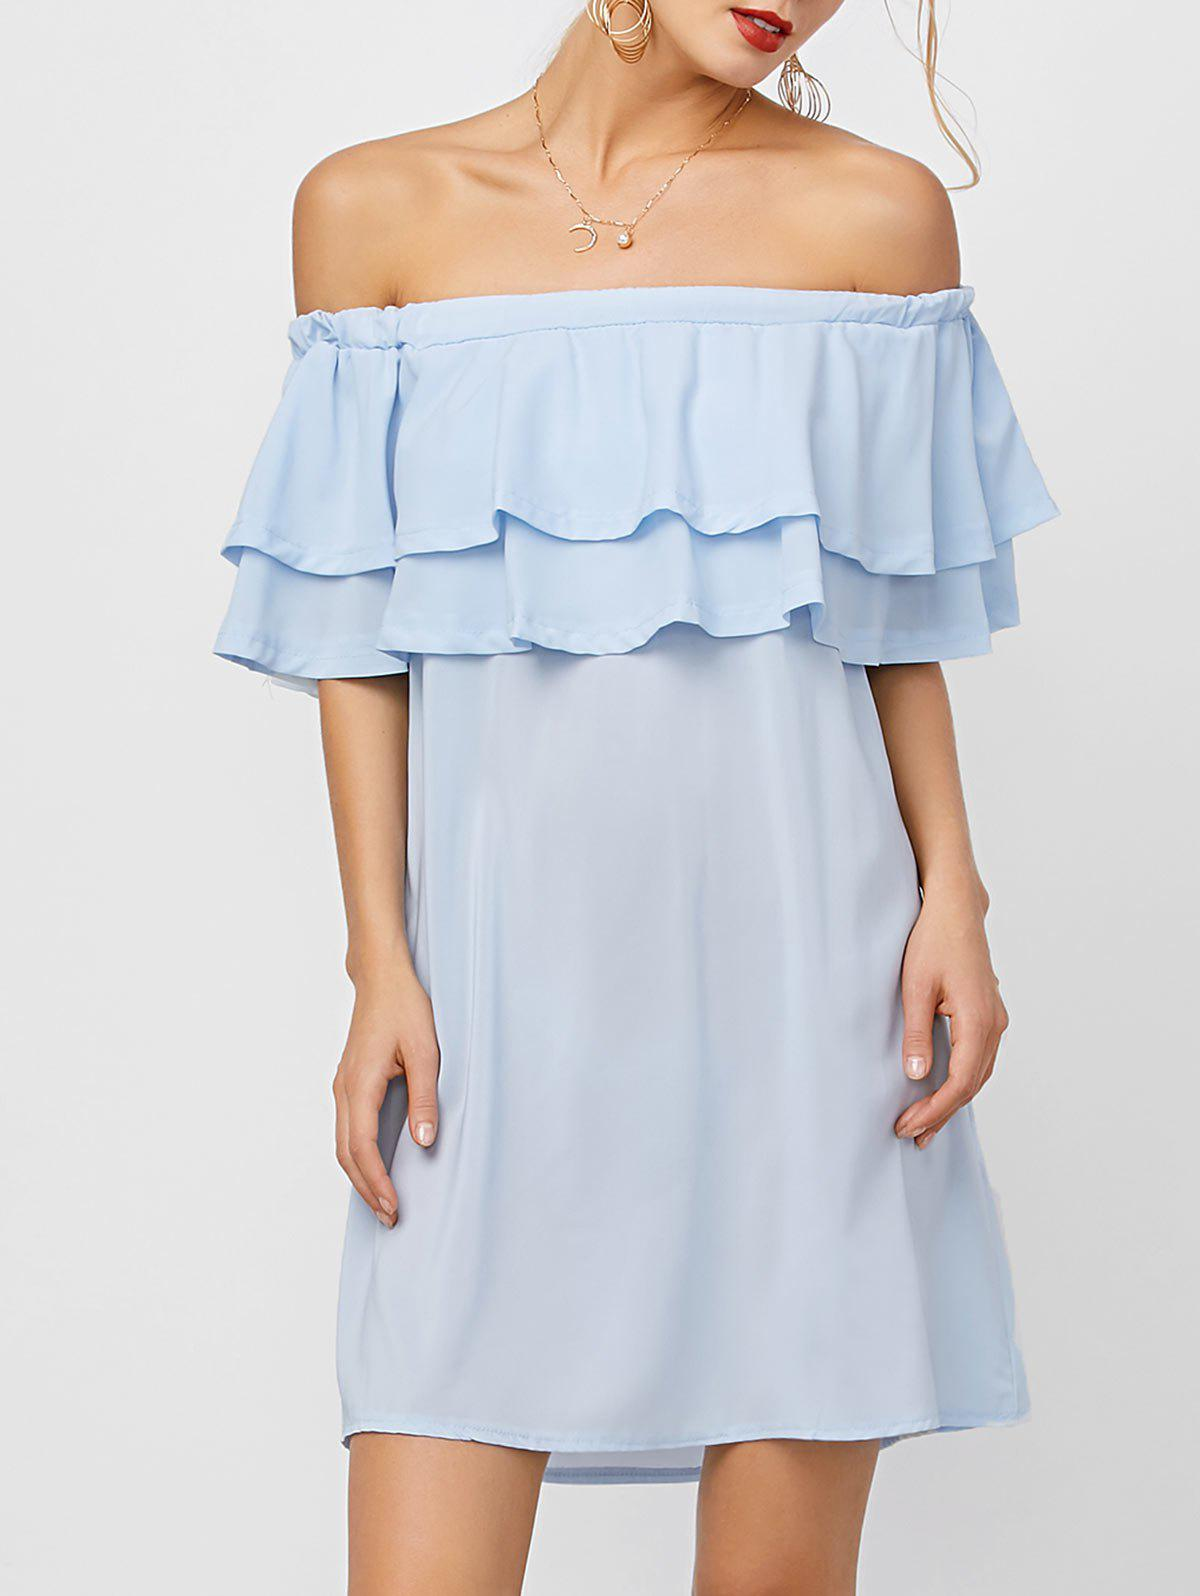 Fashion Flounce Off Shoulder Chiffon Pastel Casual Short Dress with Sleeves